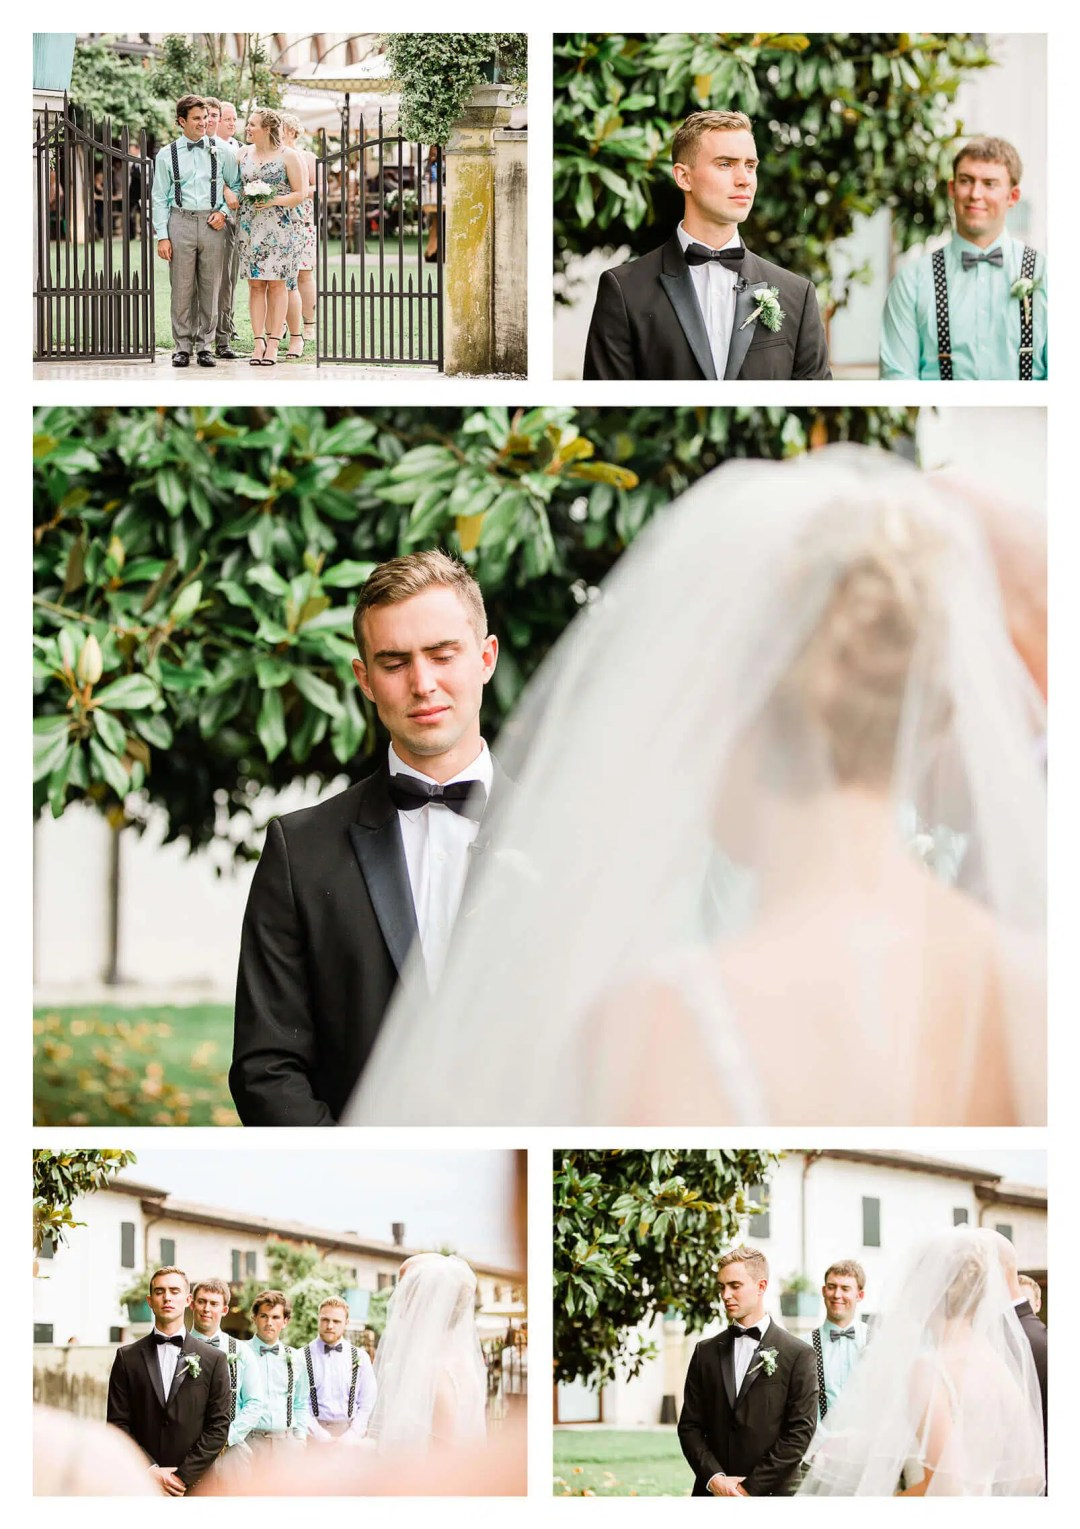 Groom emotional reaction when bride walks down the aisle | Italy wedding photographer-